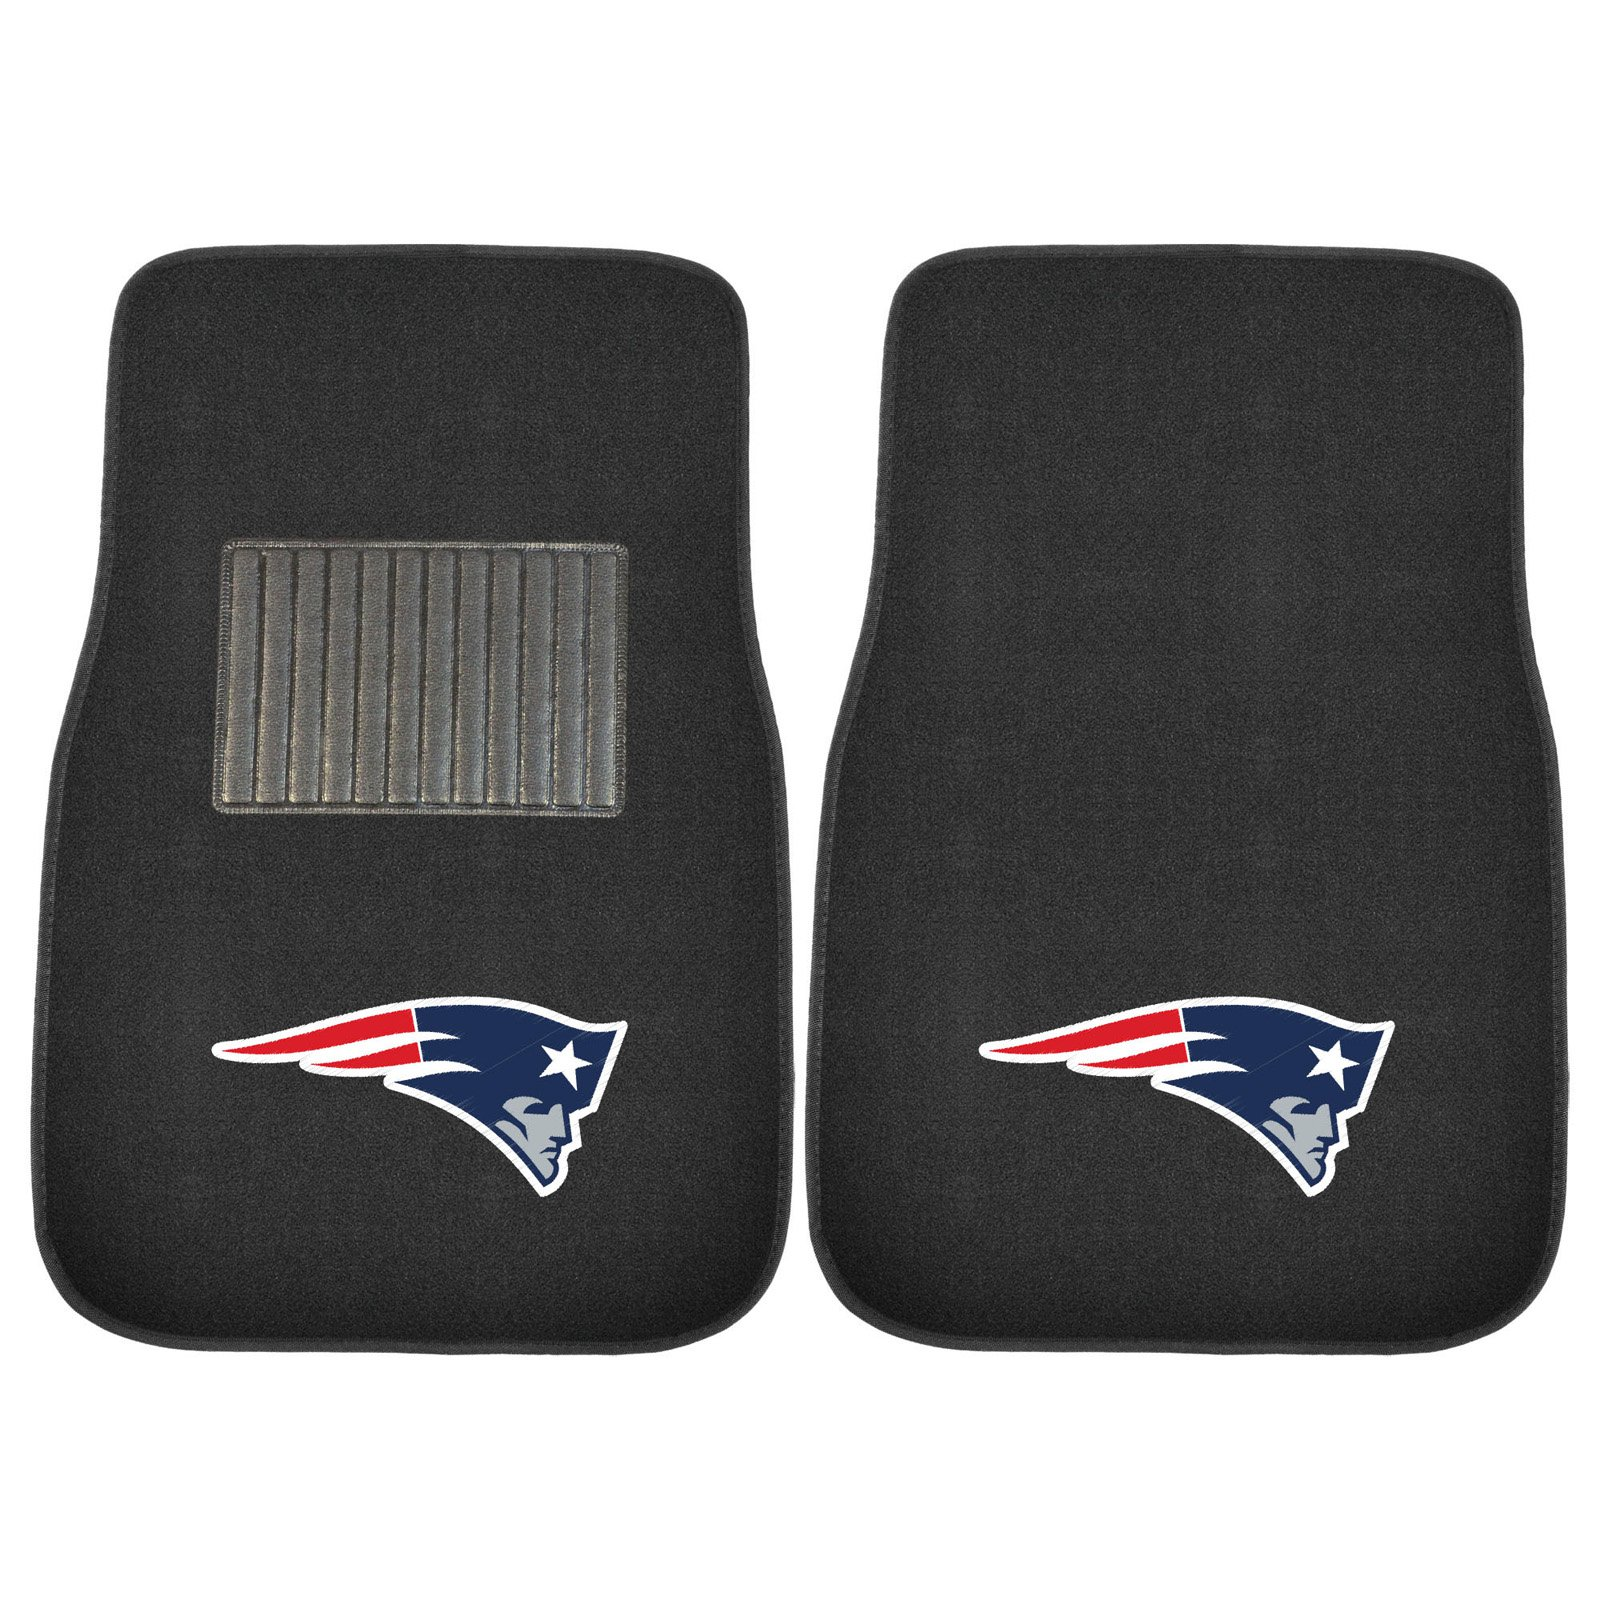 NFL New England Patriots Embroidered Car Mats